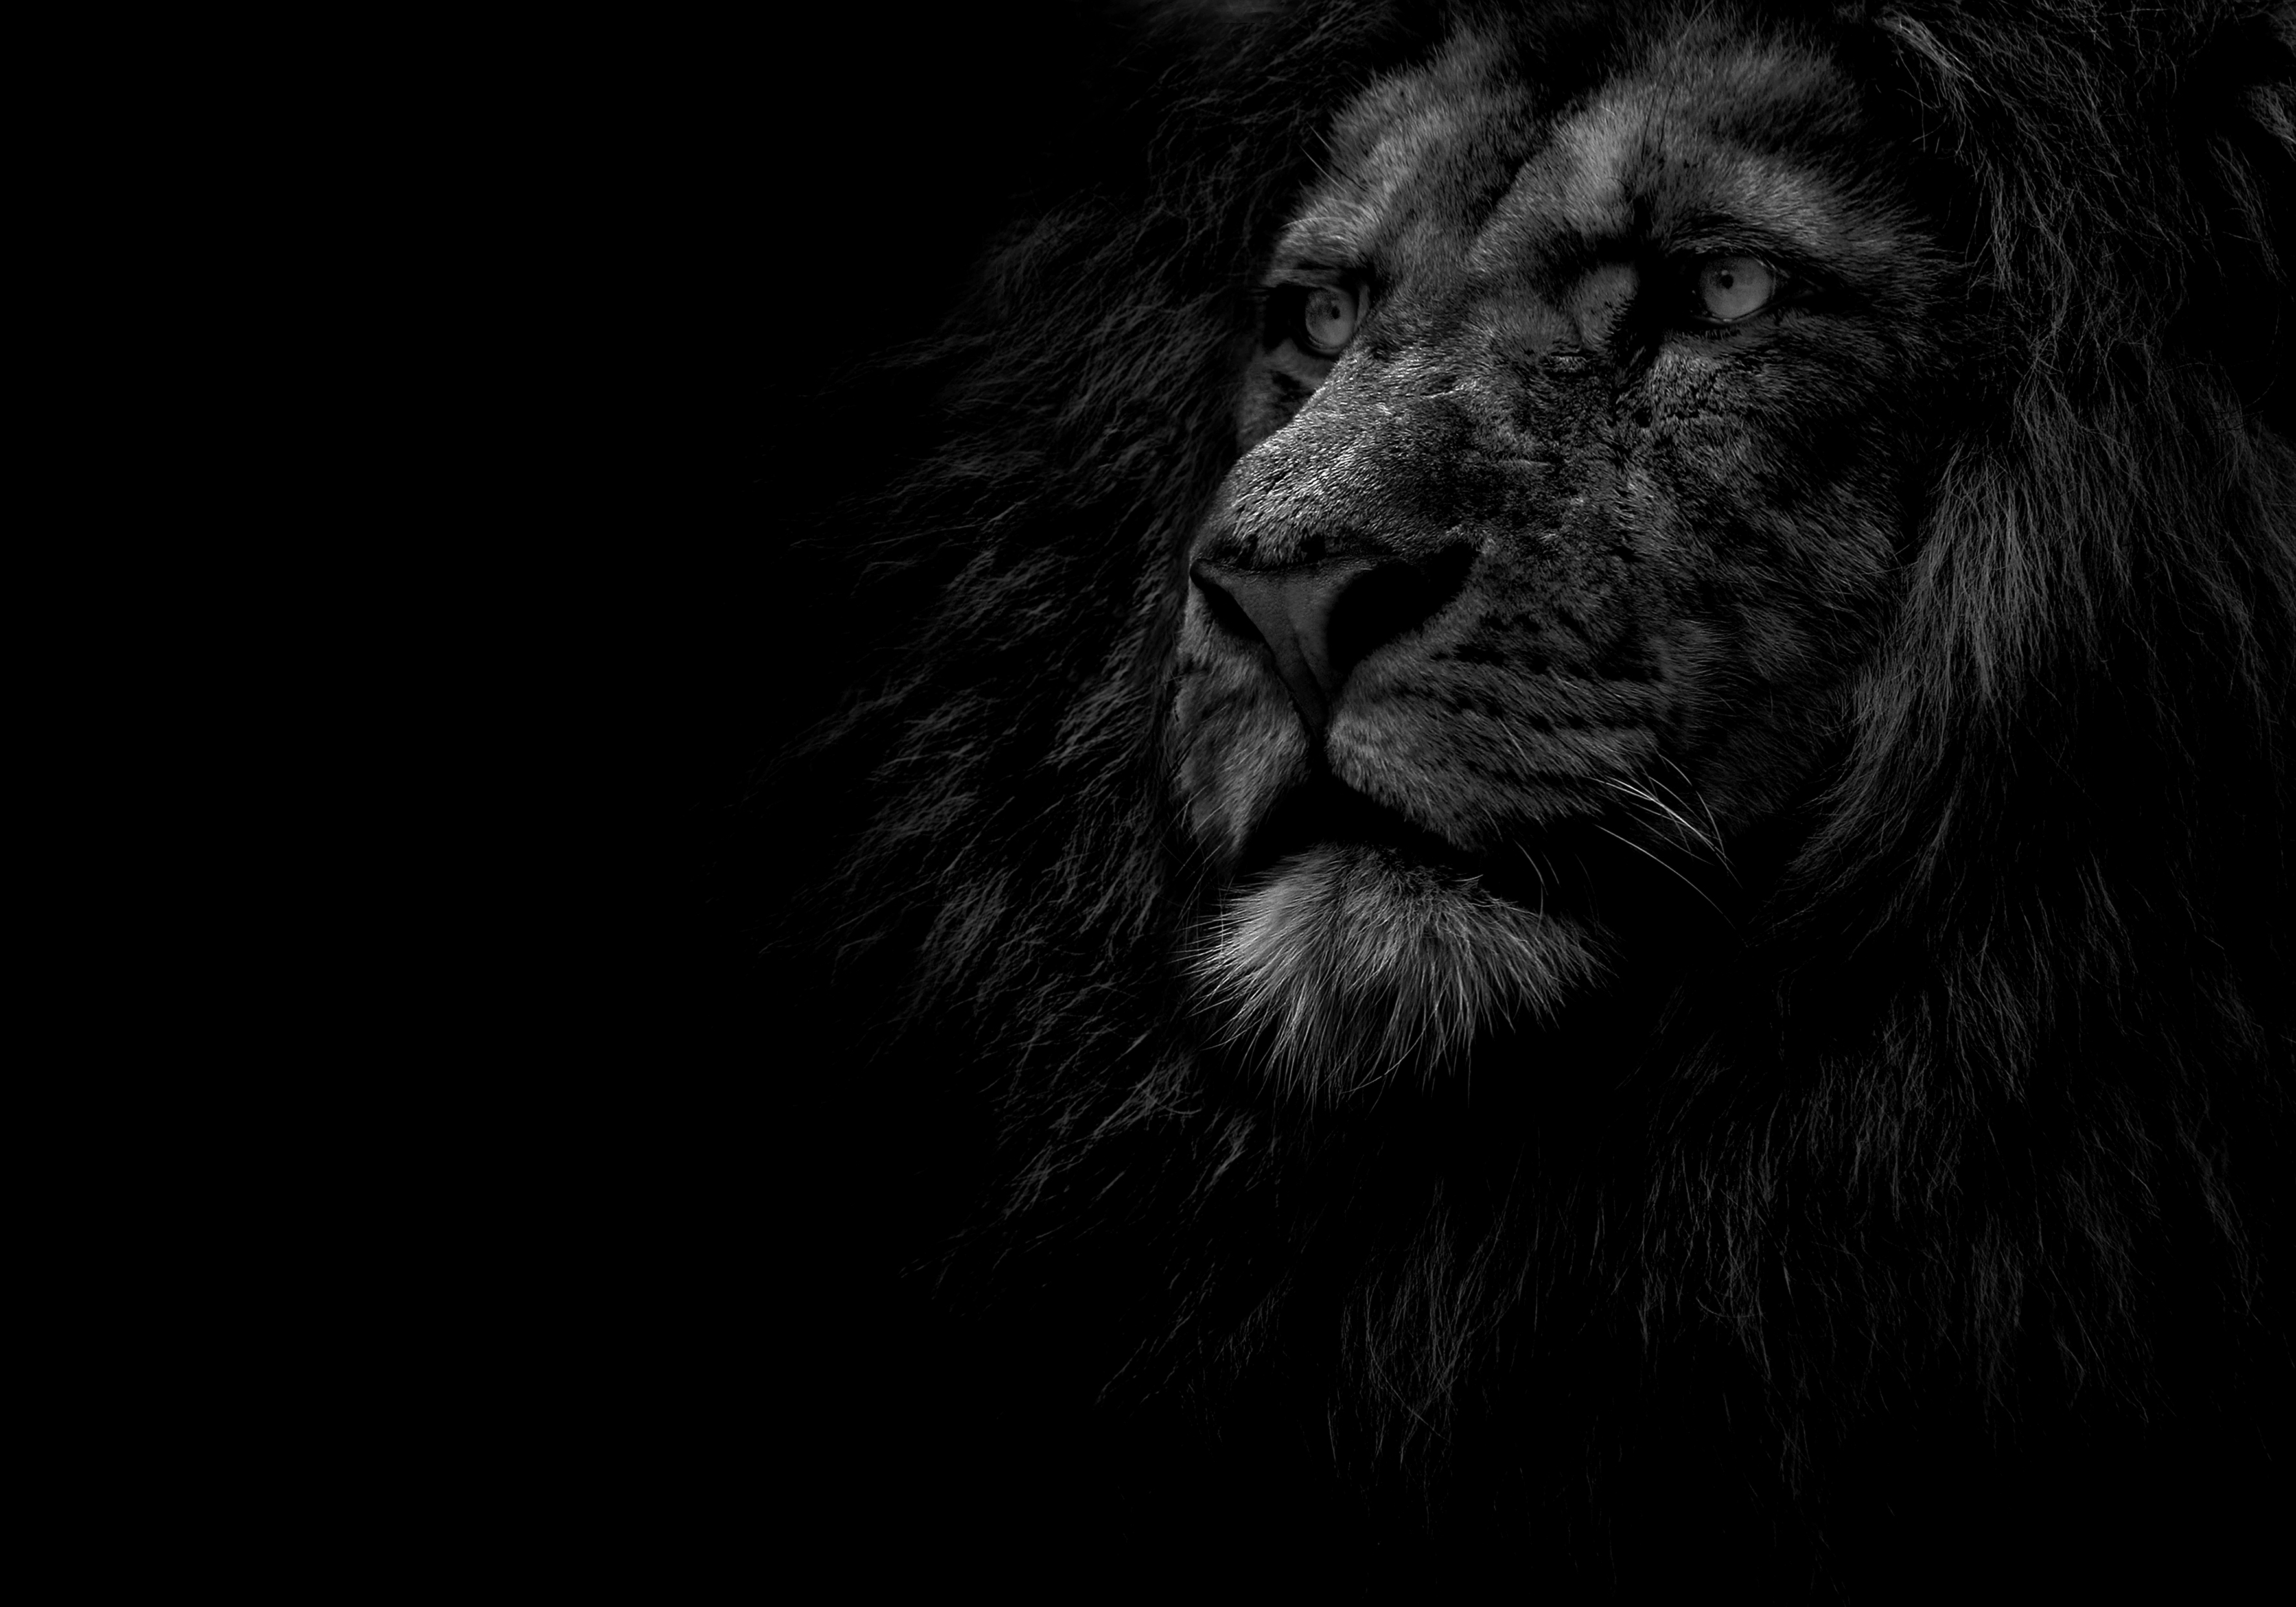 The Goal Of The Lion Inside The Lion Inside